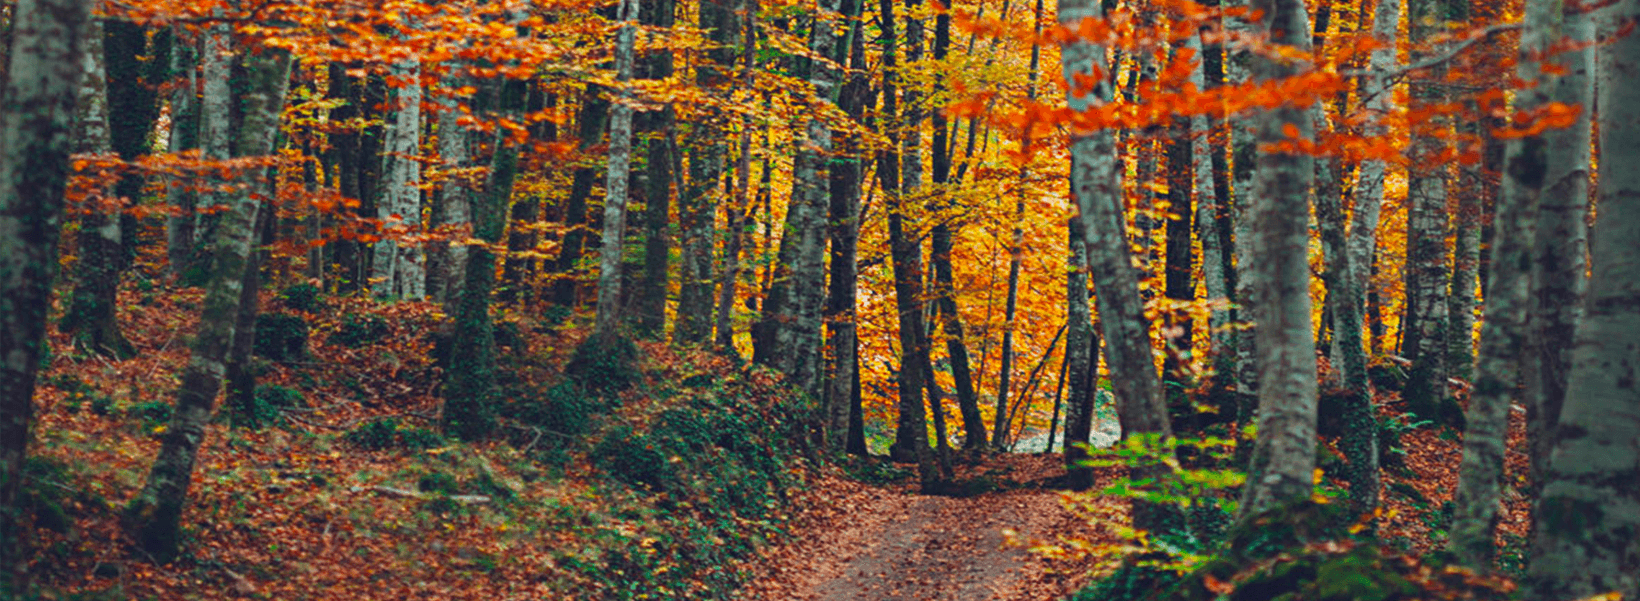 forest with colorful leaves